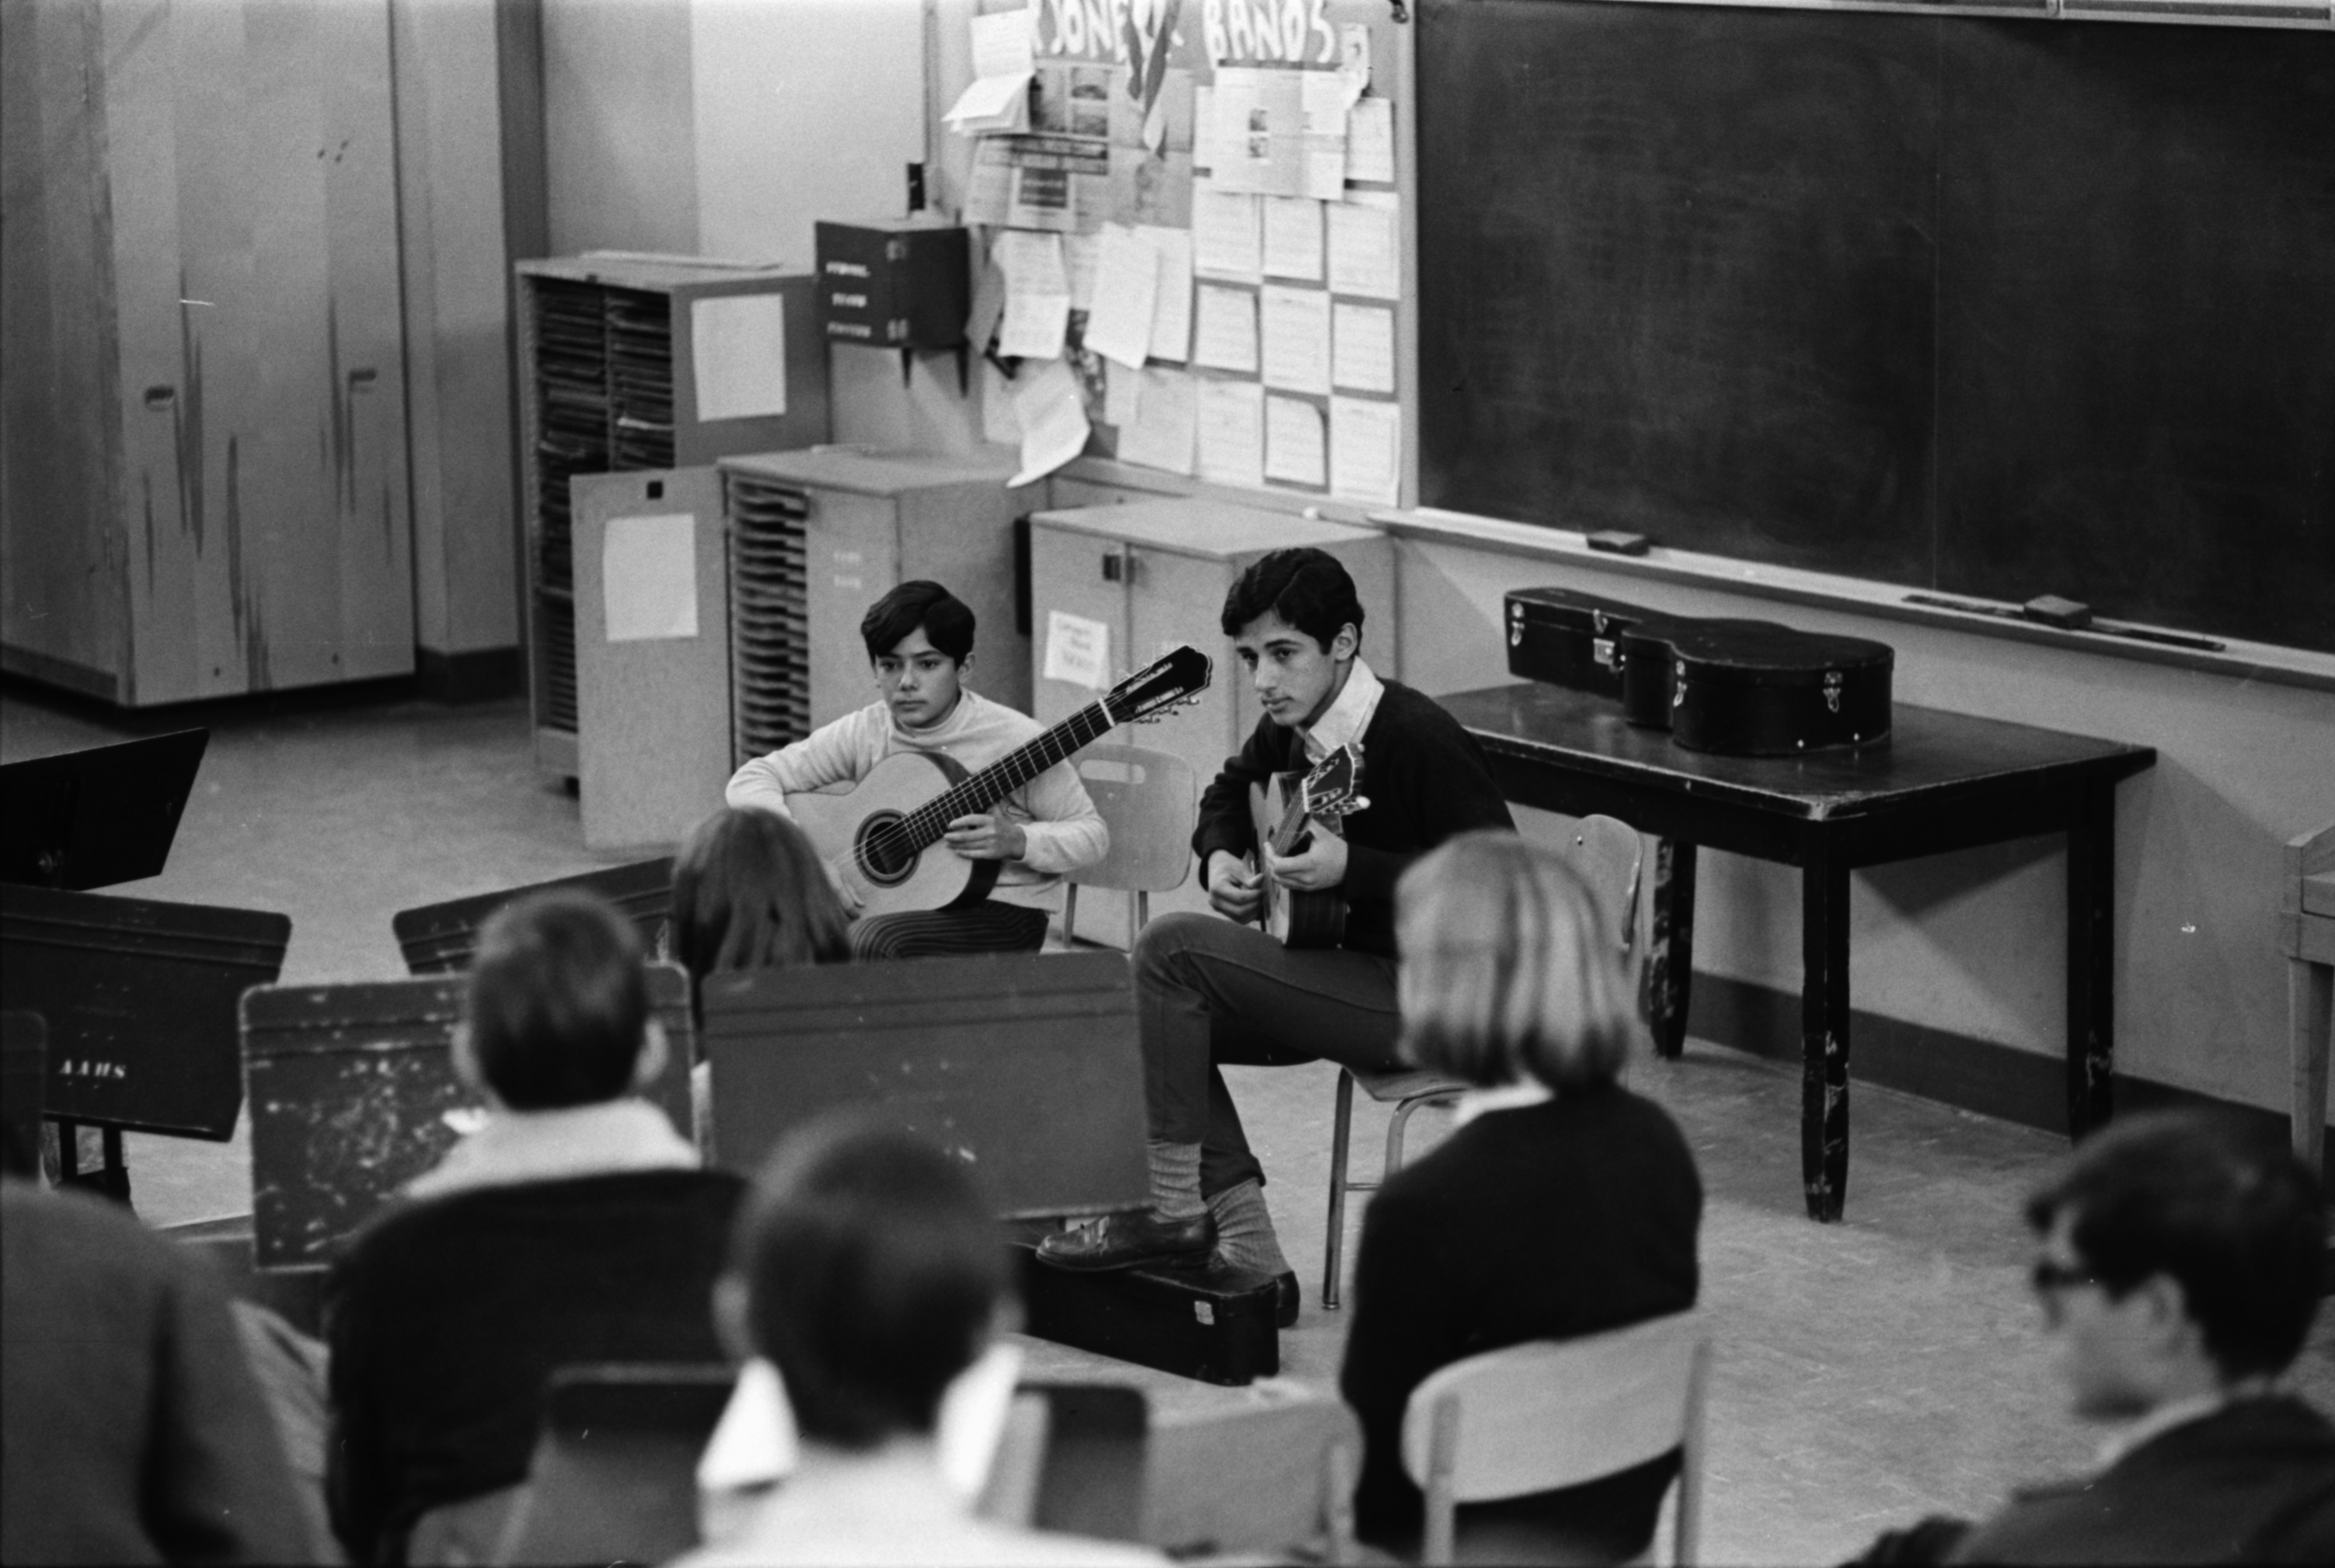 Odair and Sergio Assad, brothers from Rio de Janeiro, play classical guitar in Pioneer High School class, February 1969 image